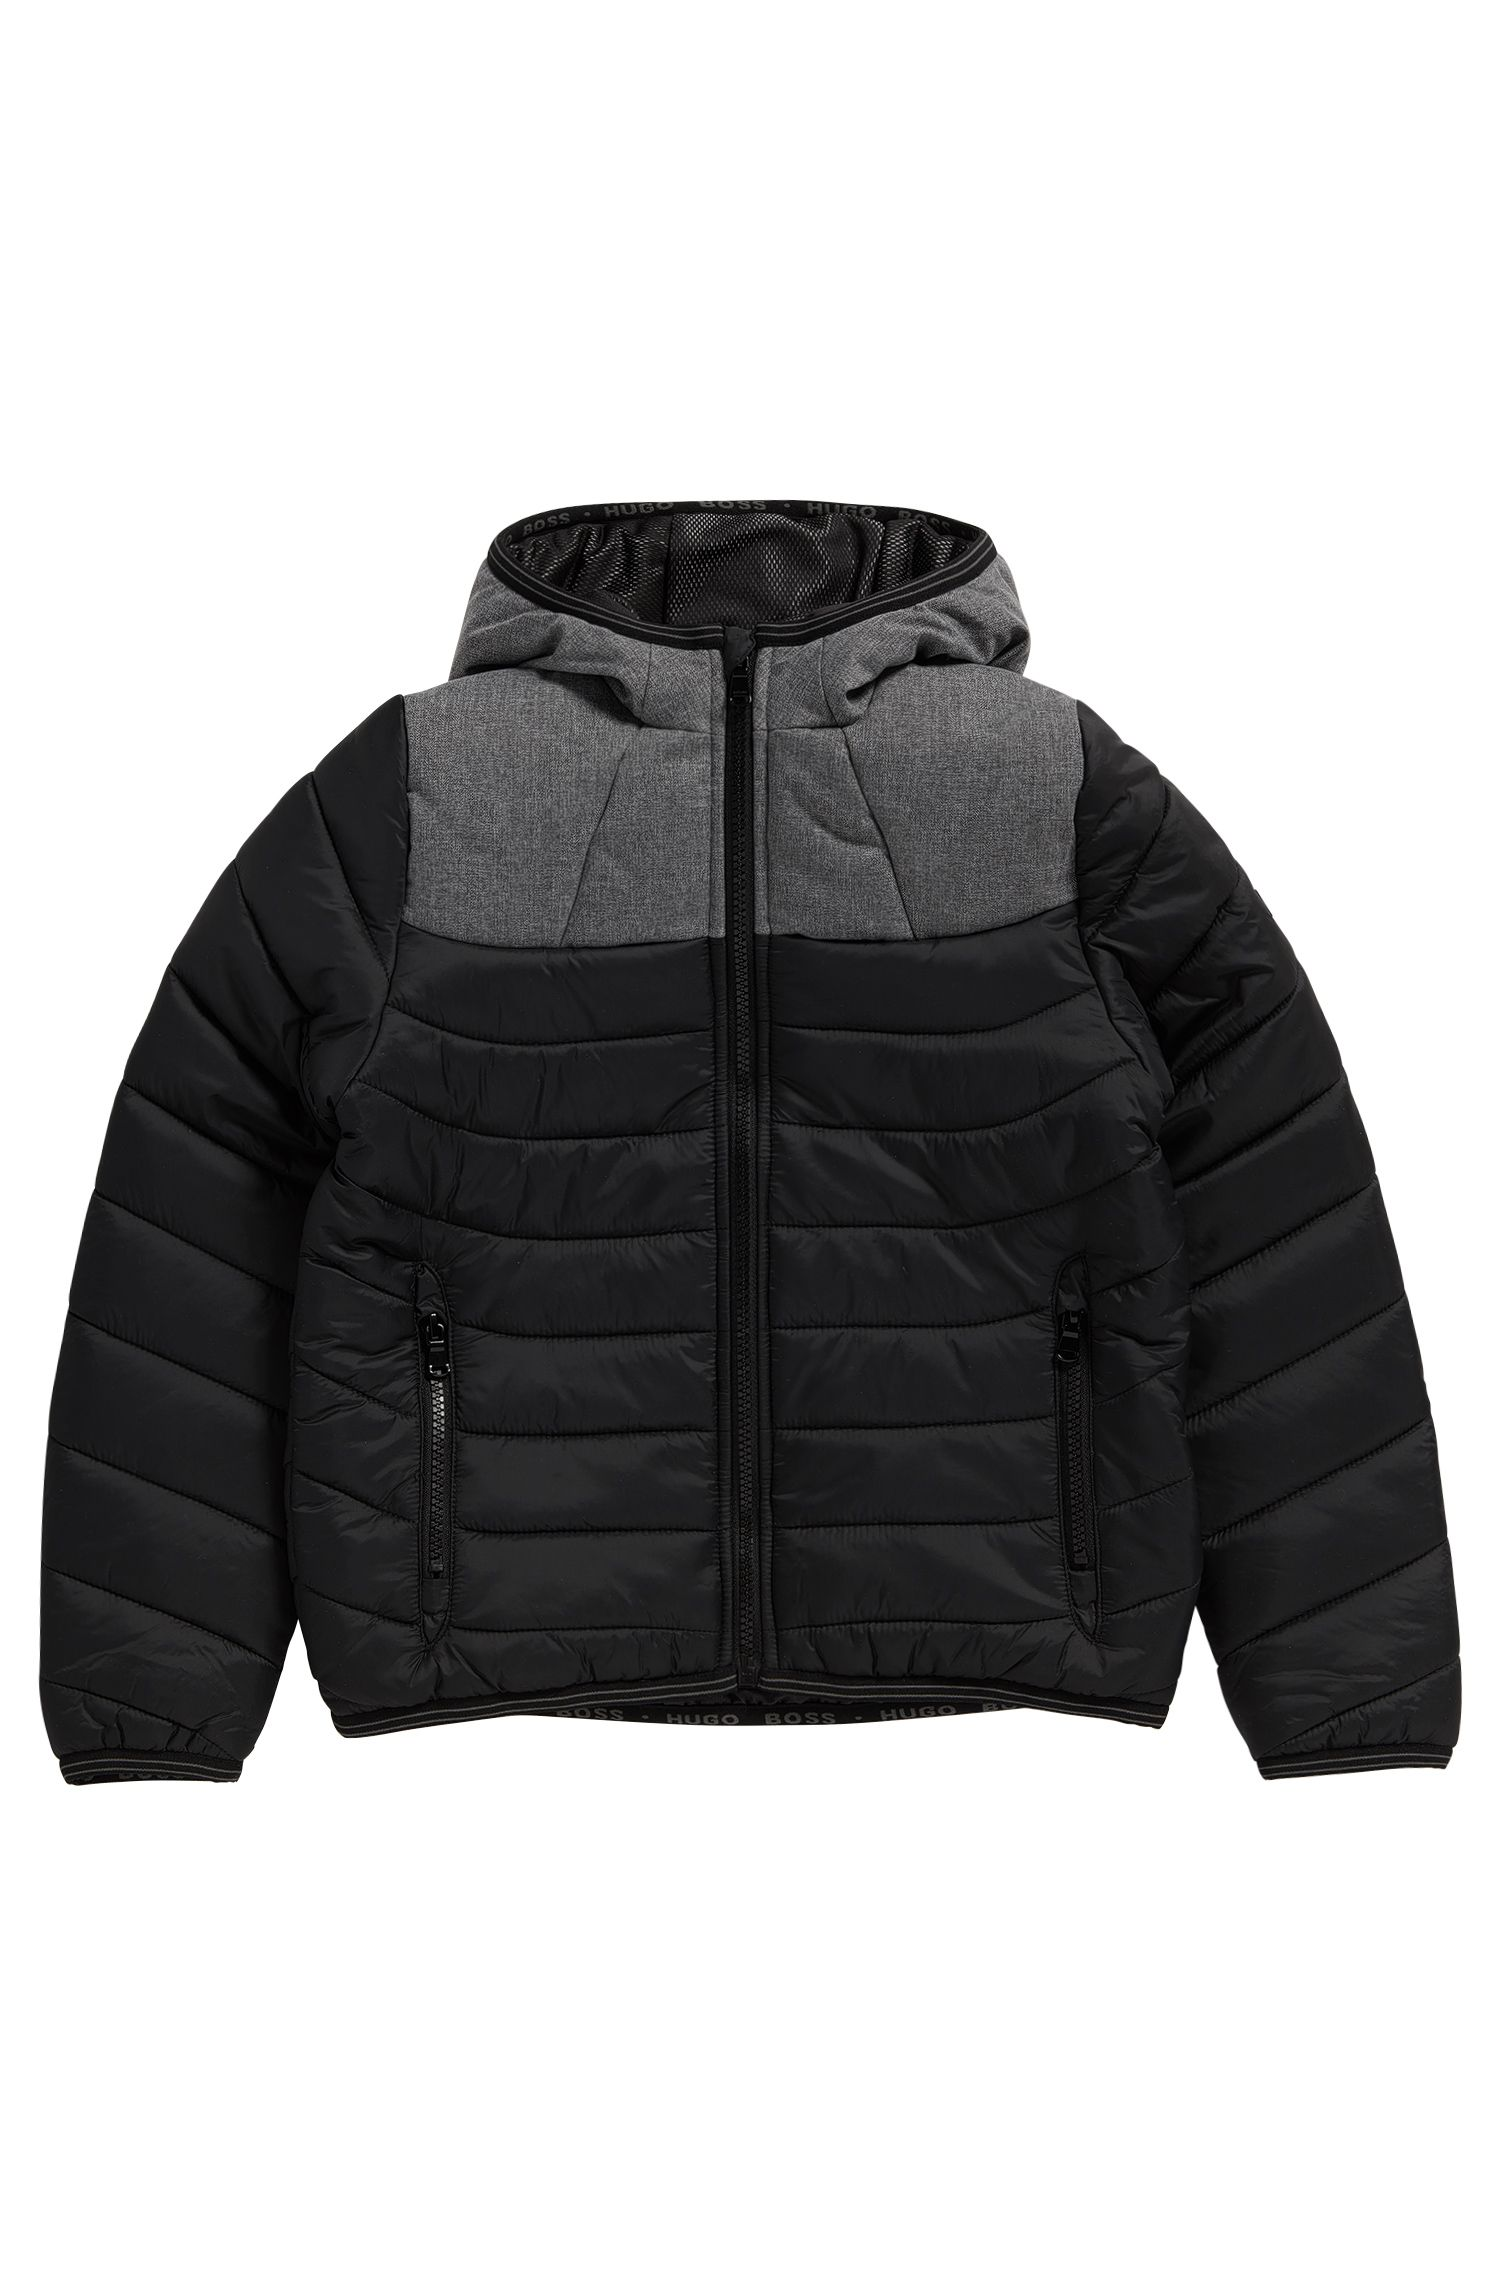 'J26286' | Boys Nylon Quilted Jacket, Attached Hood